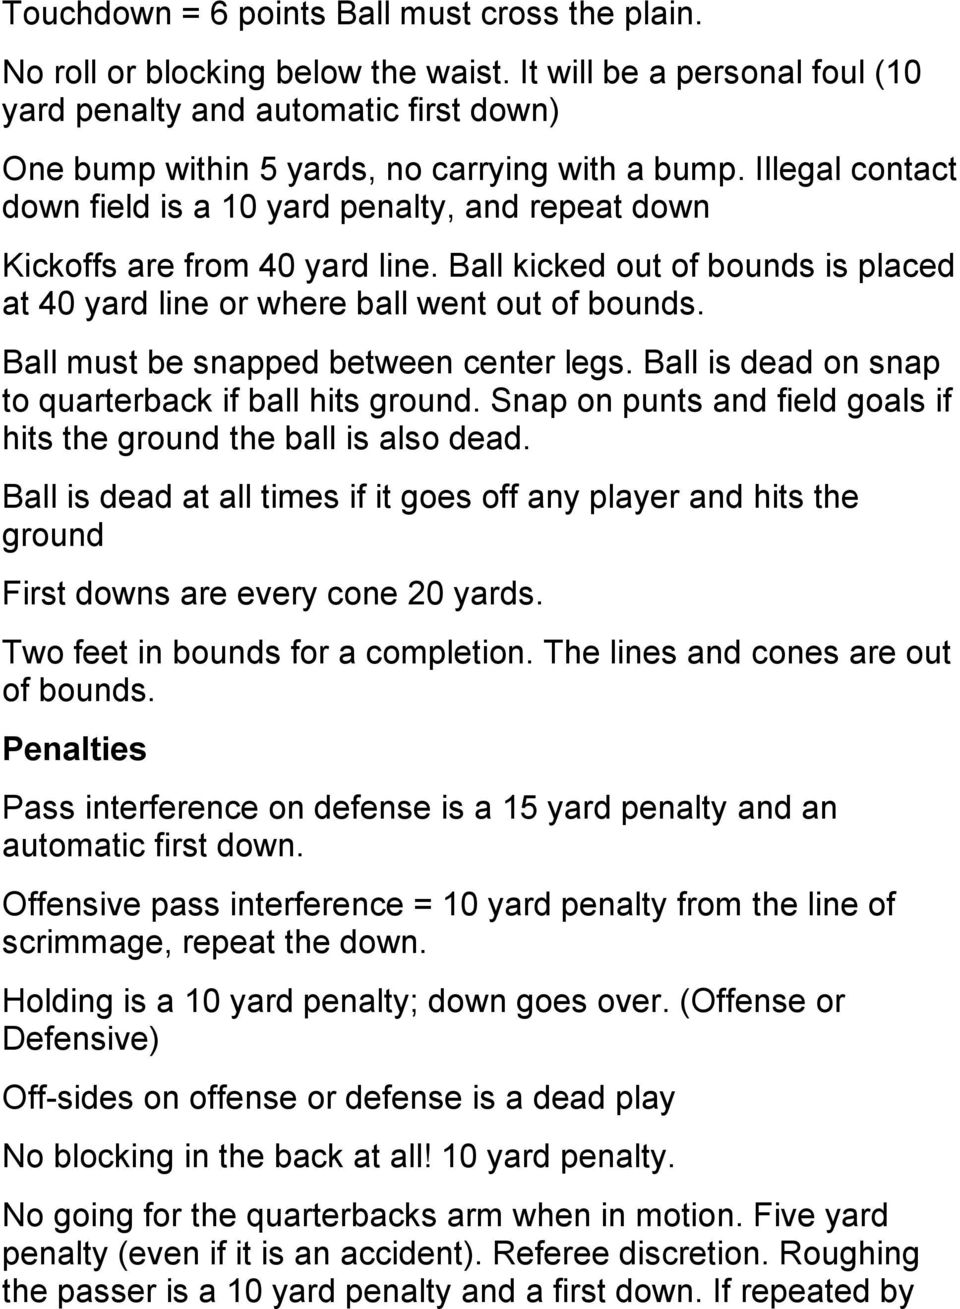 Illegal contact down field is a 10 yard penalty, and repeat down Kickoffs are from 40 yard line. Ball kicked out of bounds is placed at 40 yard line or where ball went out of bounds.